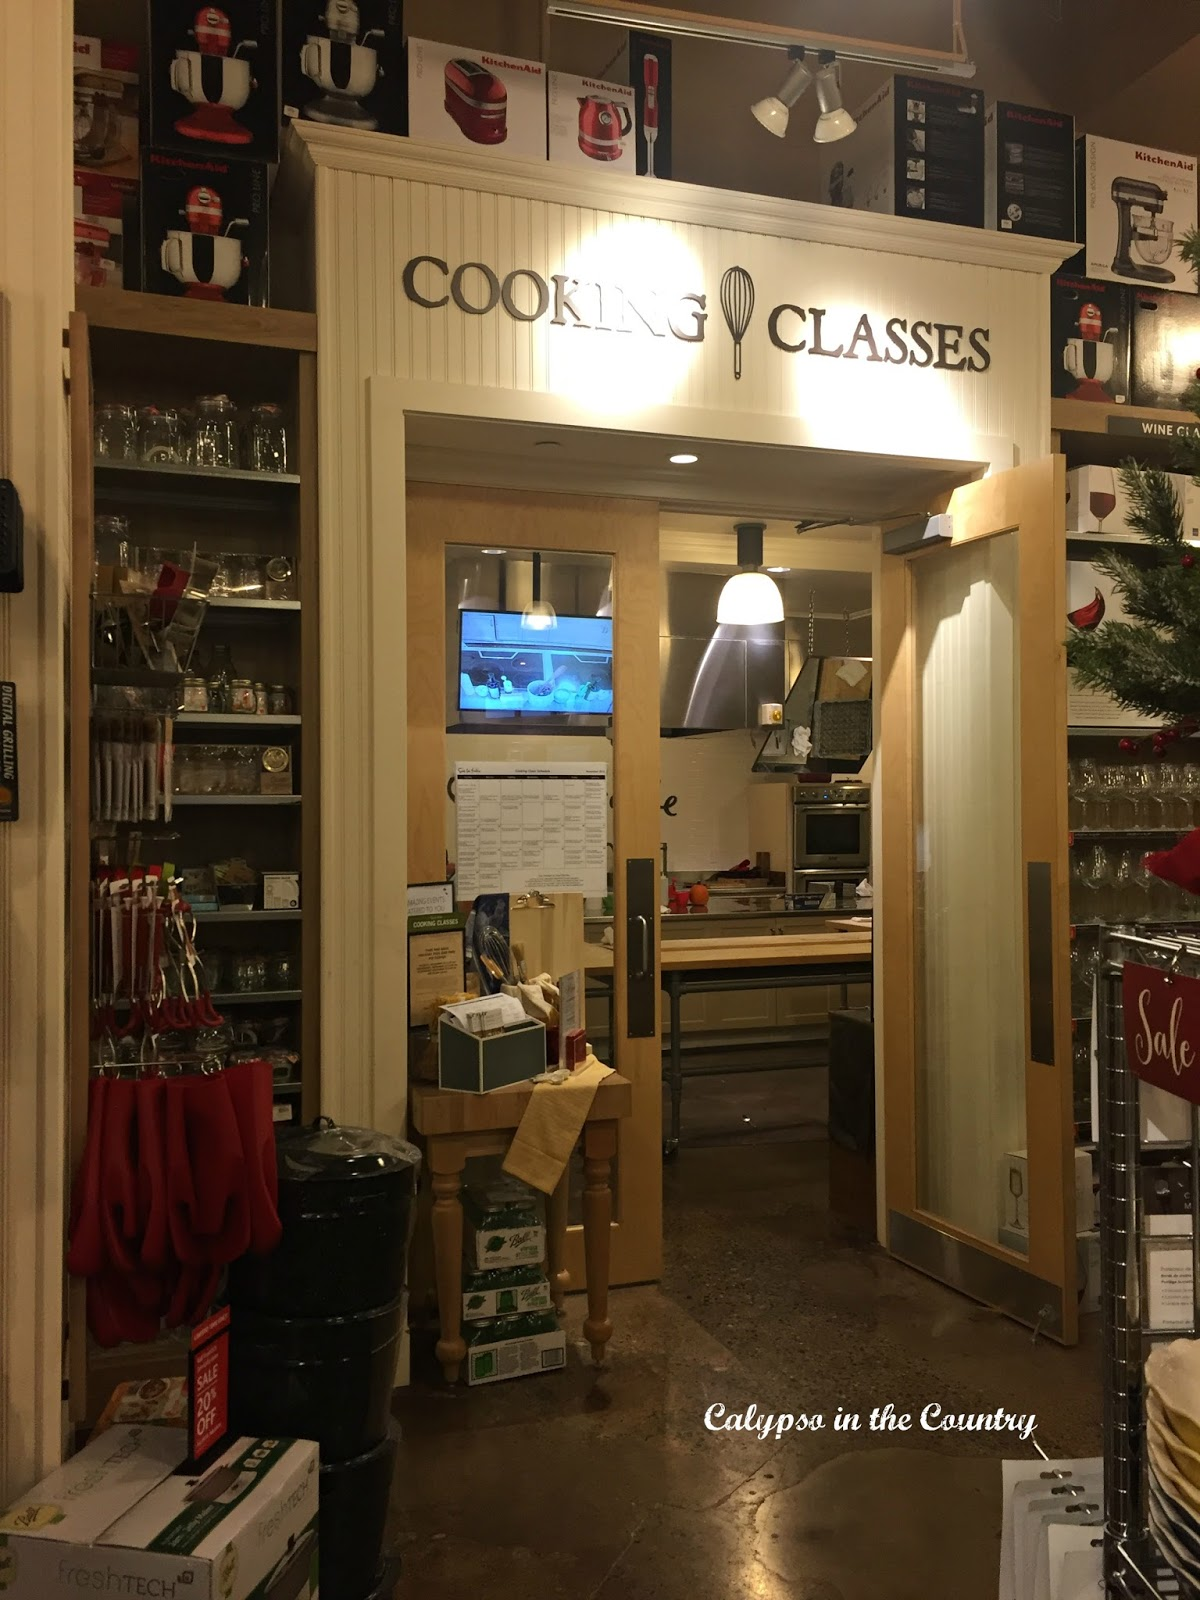 Cooking Class at Sur La Table - a creative Valentine gift idea